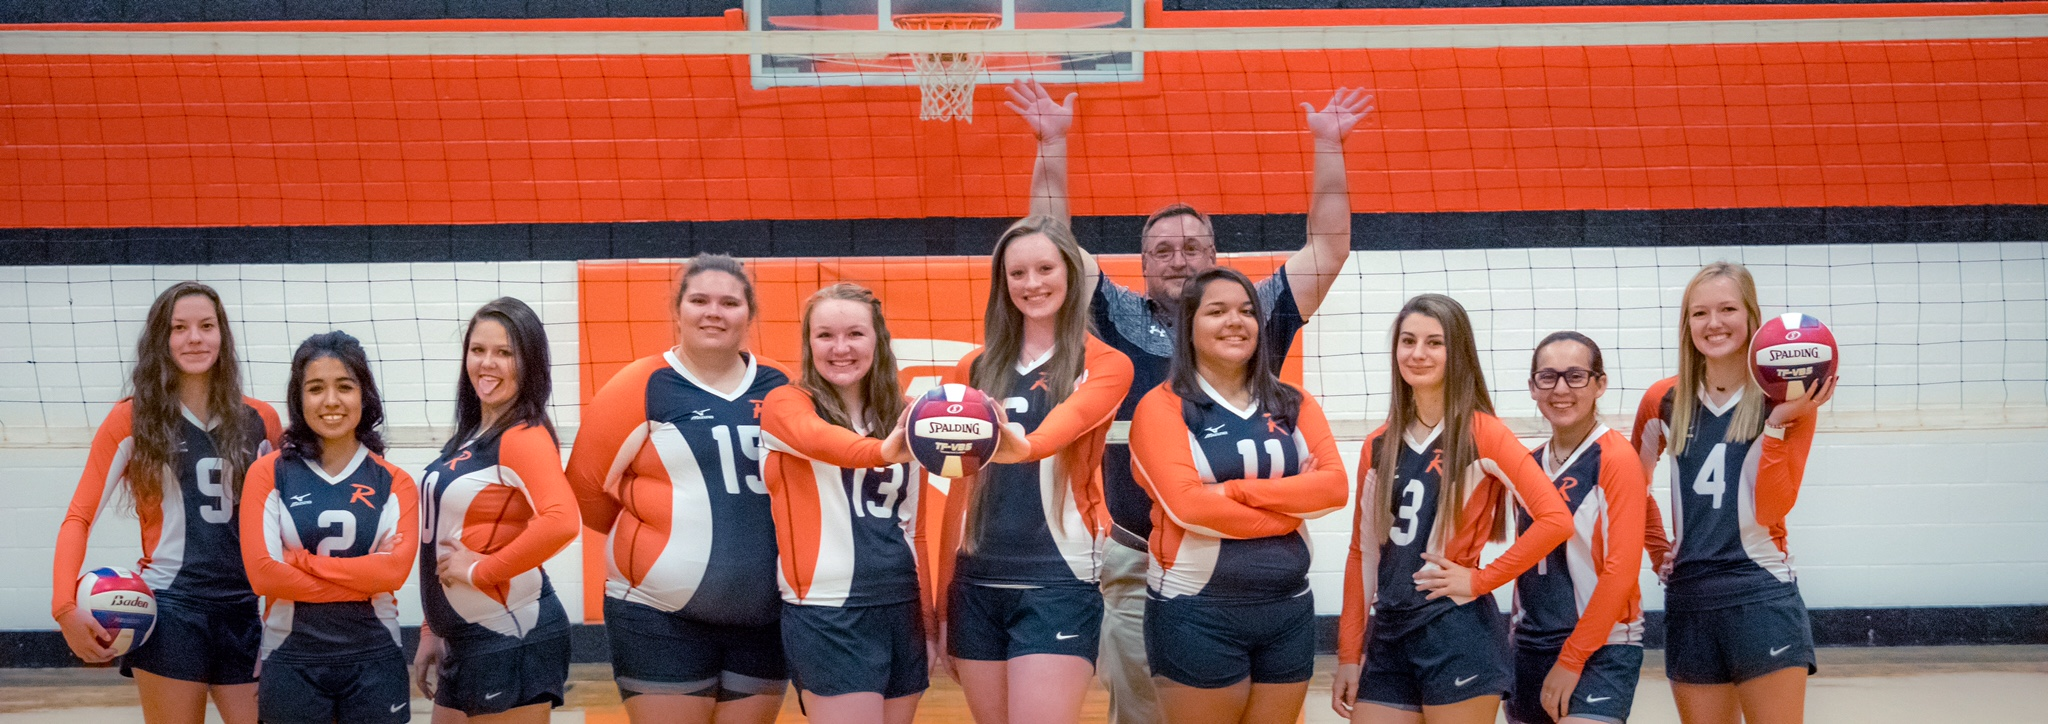 2017 Lady Hammers Volleyball